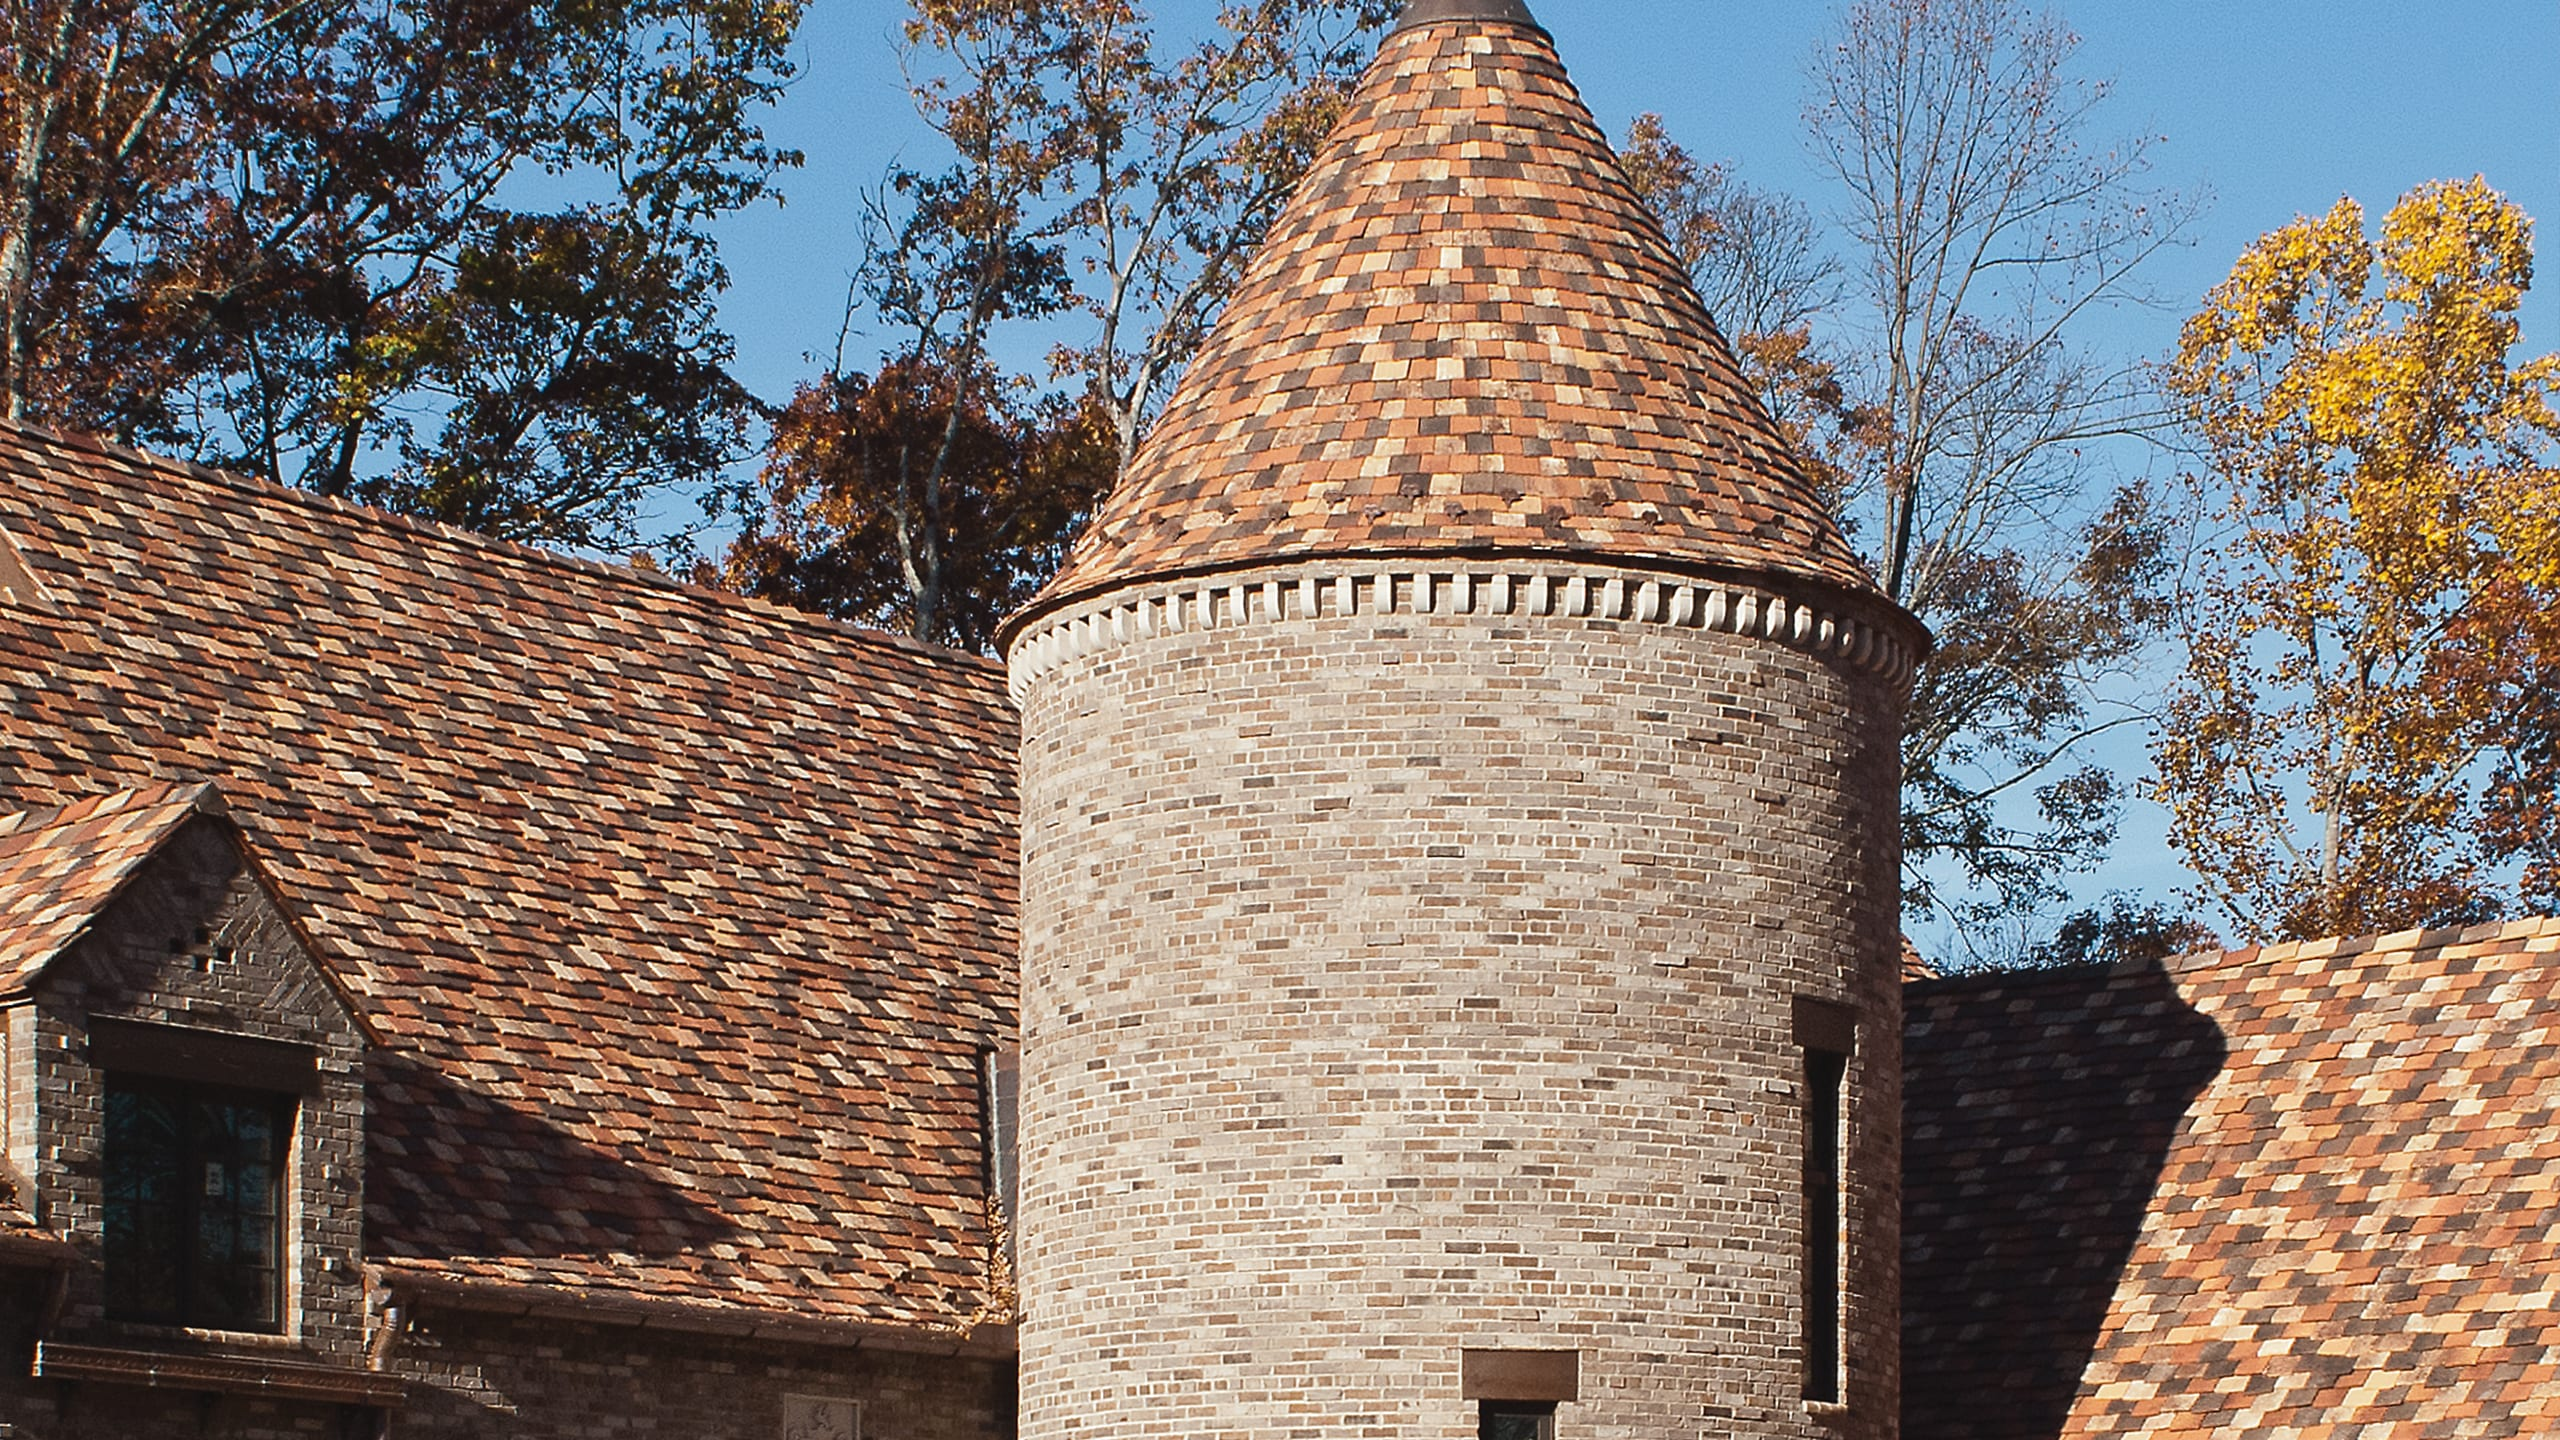 Private Residence - Greensboro Ludowici Roof Tile